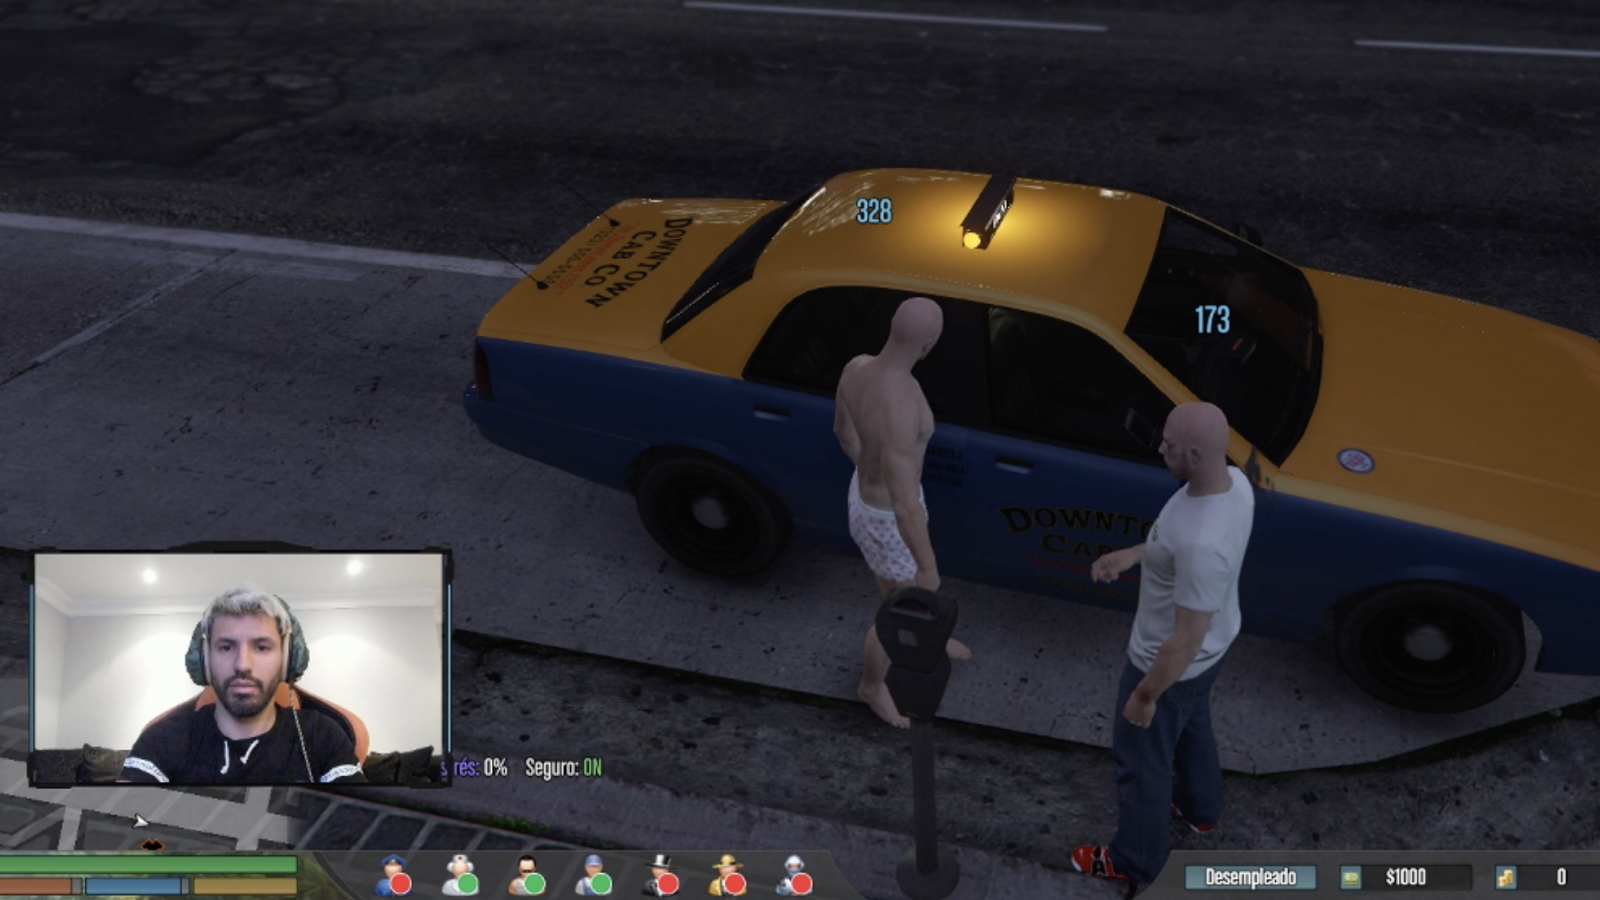 Aguero playing GTA on Twitch